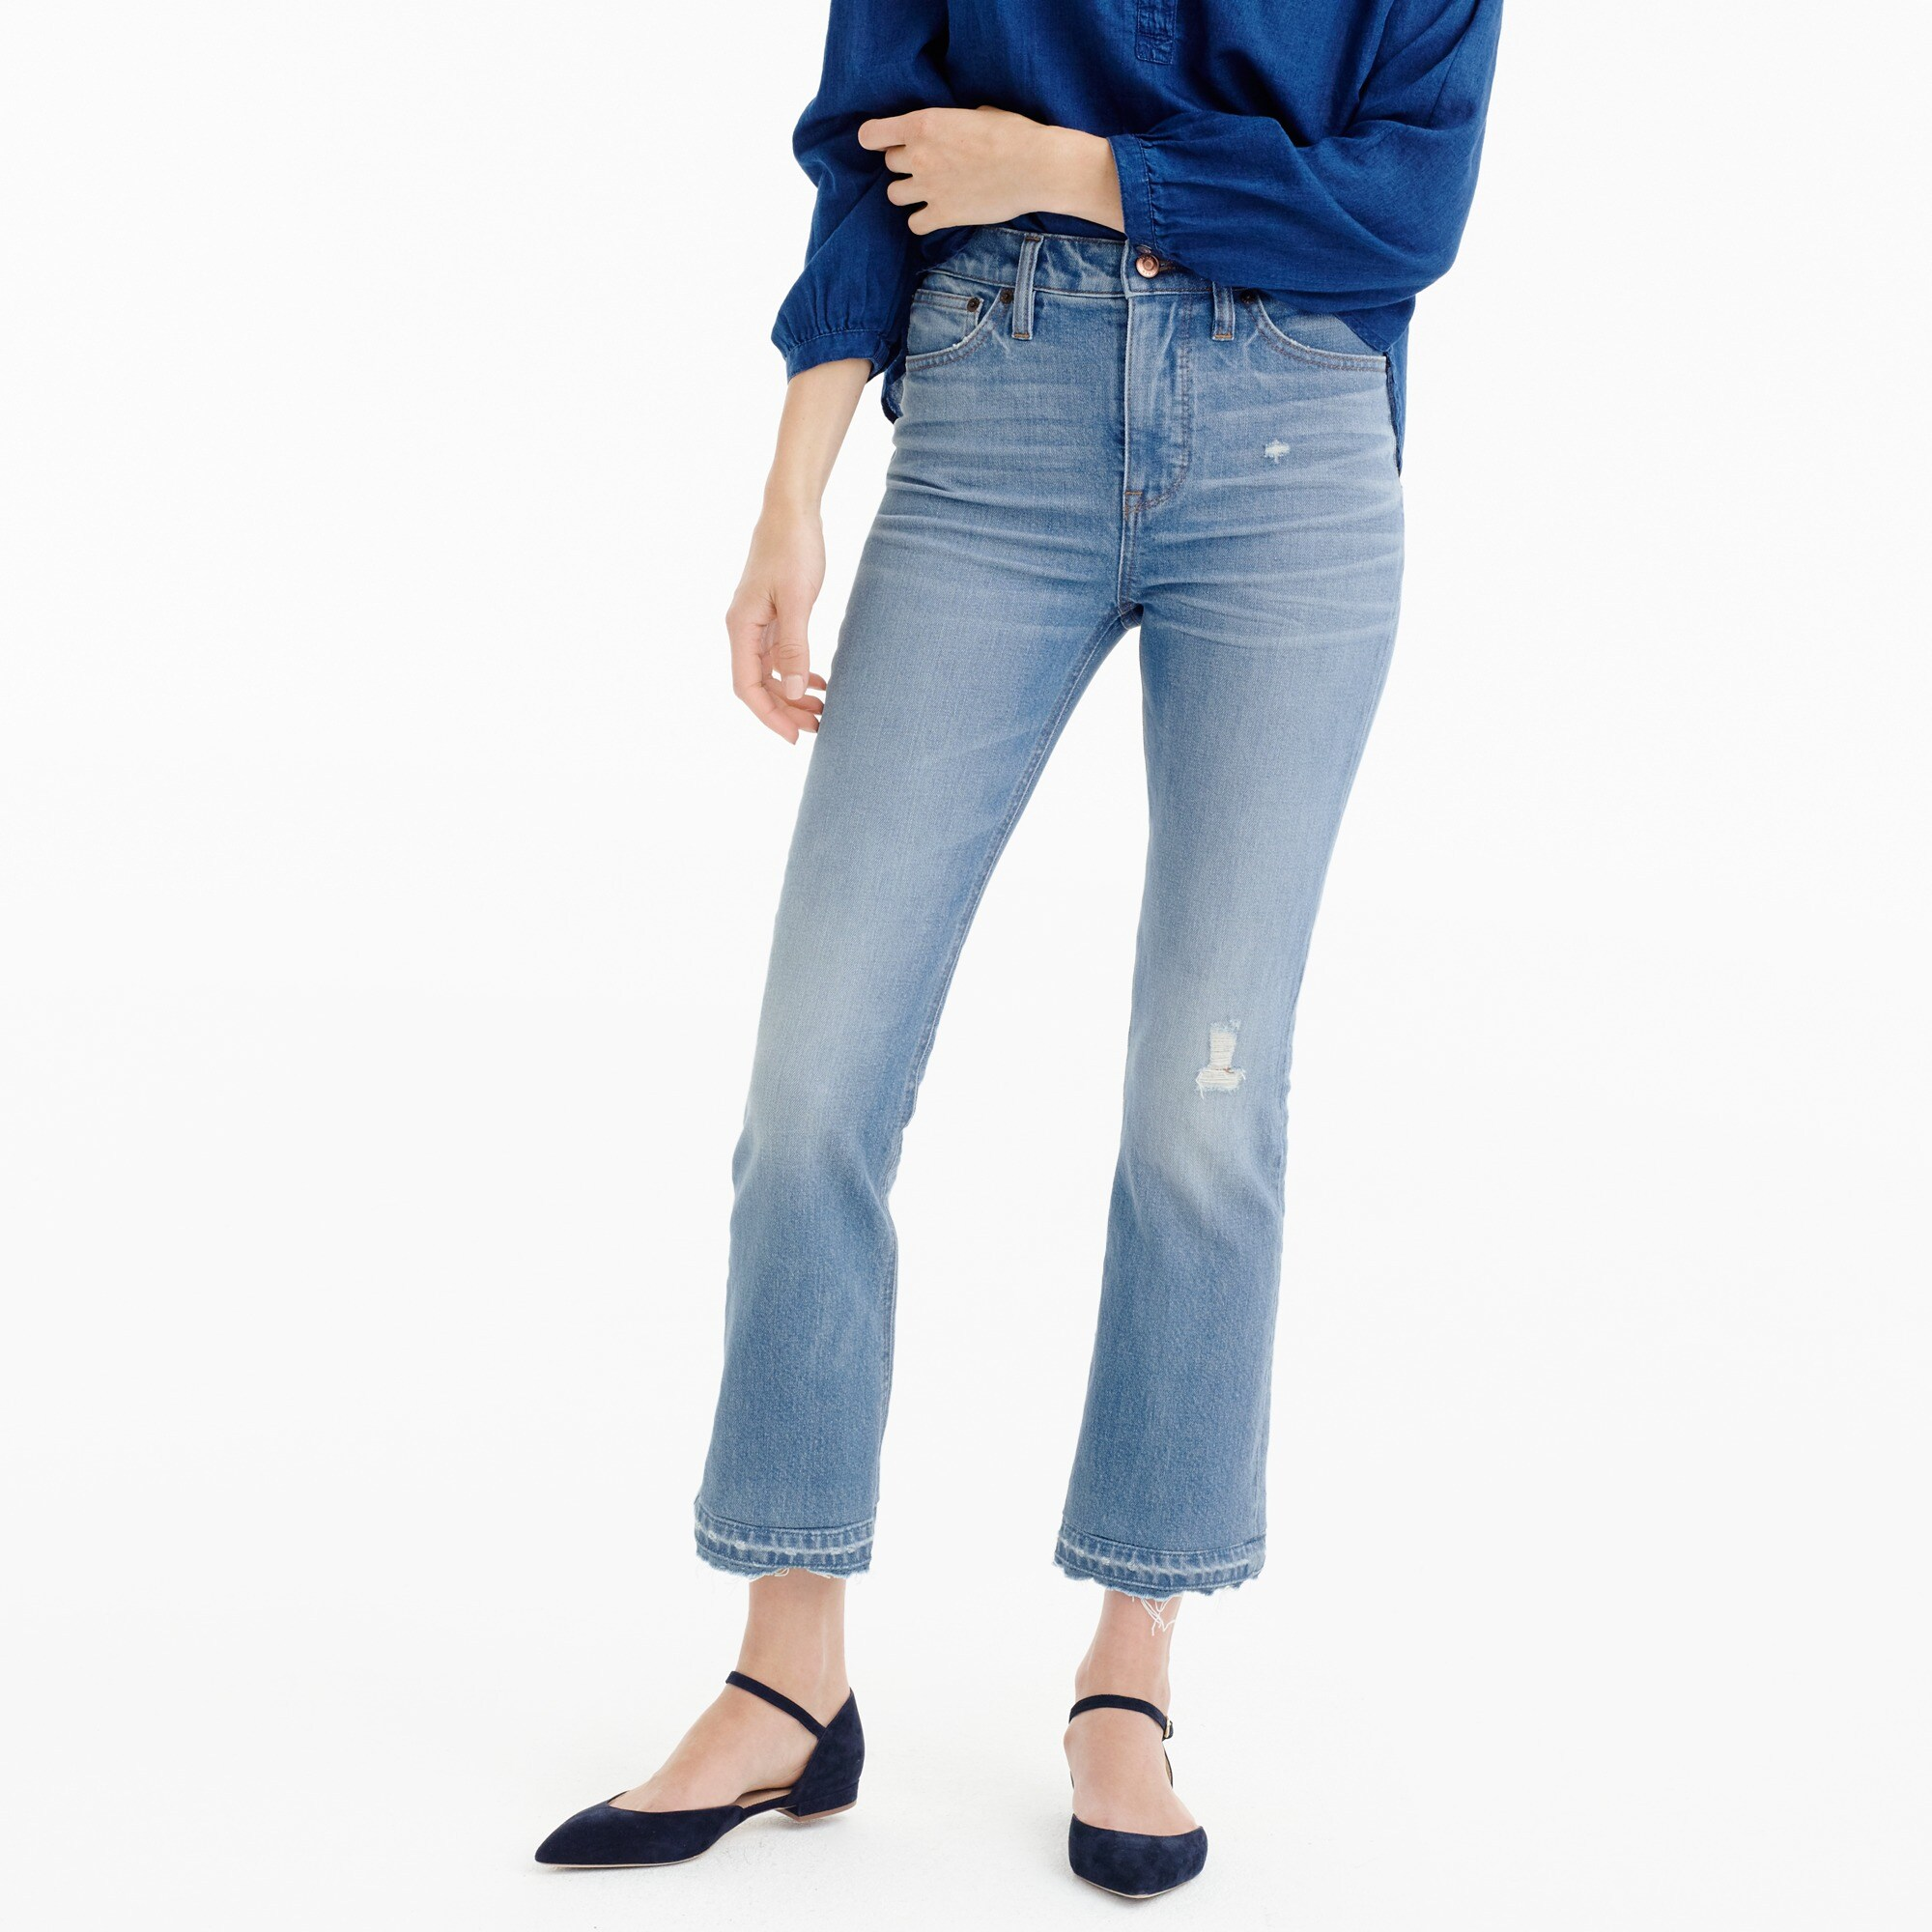 tall billie demi-boot crop jean in sherman wash : women denim